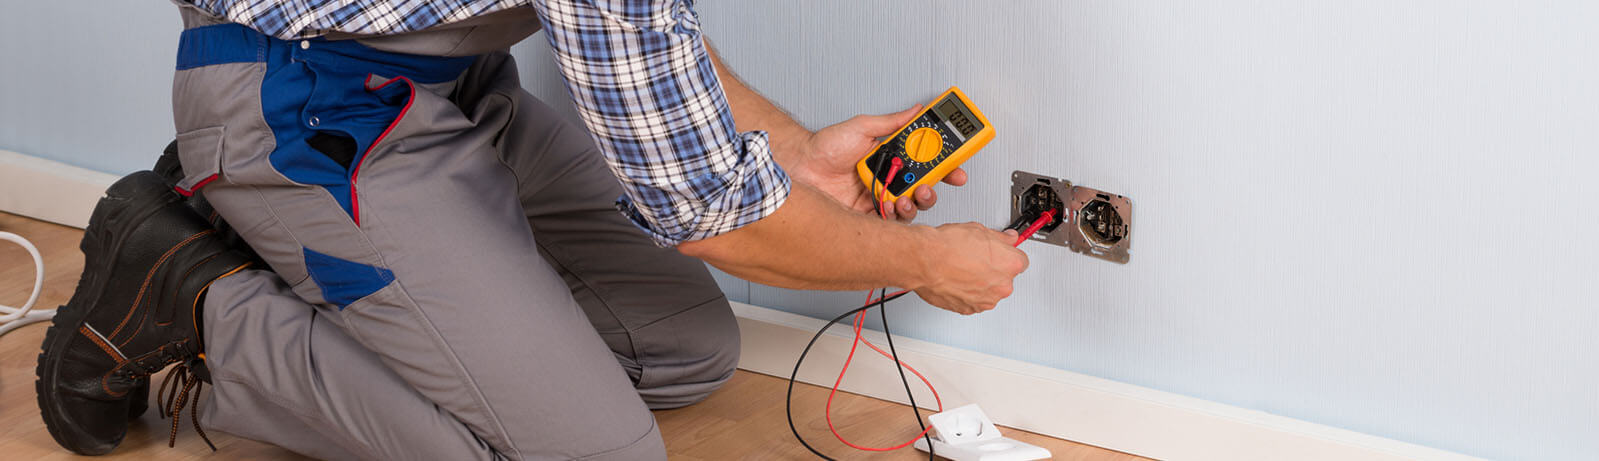 Male Electrician With Screwdriver Repairing Fire Sensor